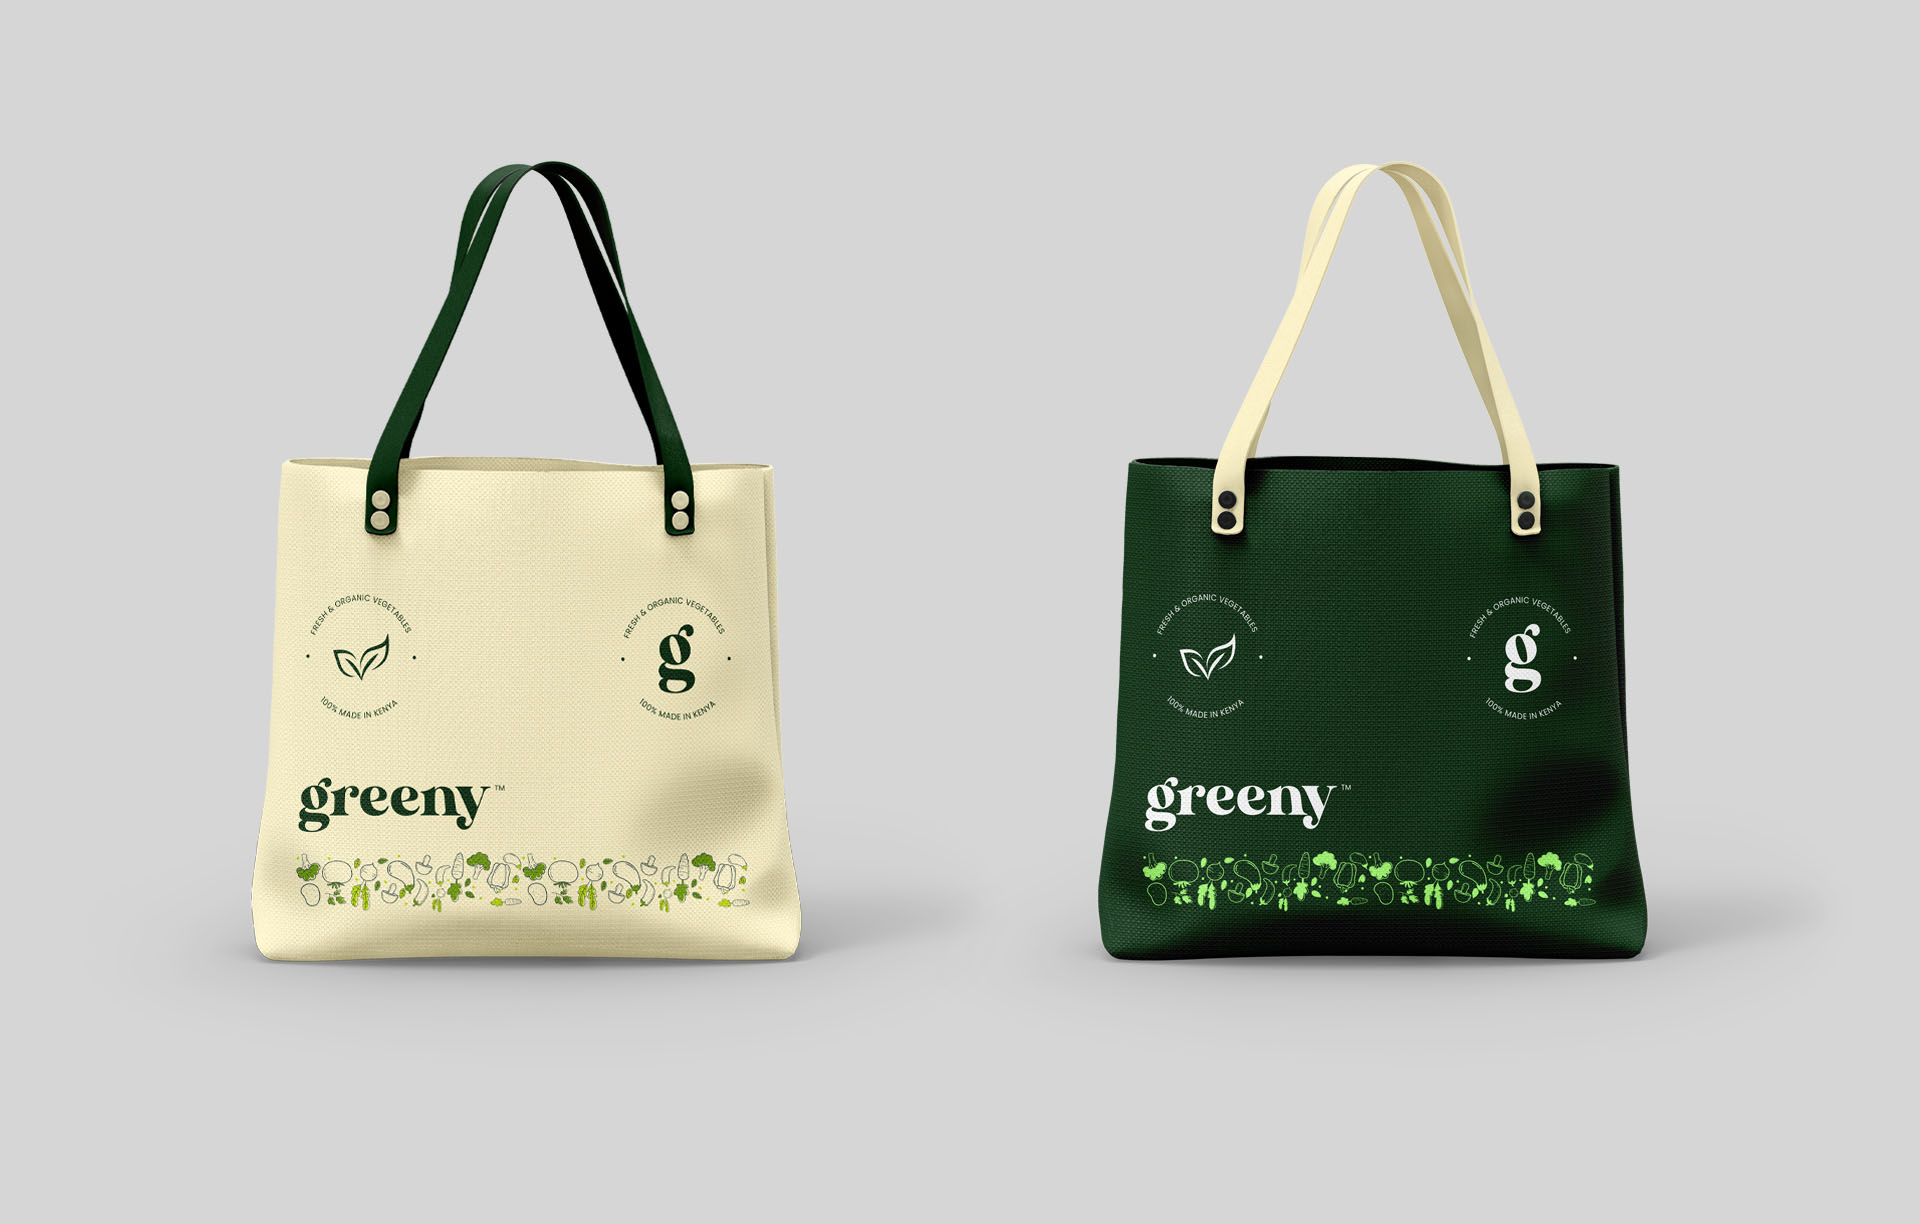 Greeny tote bags